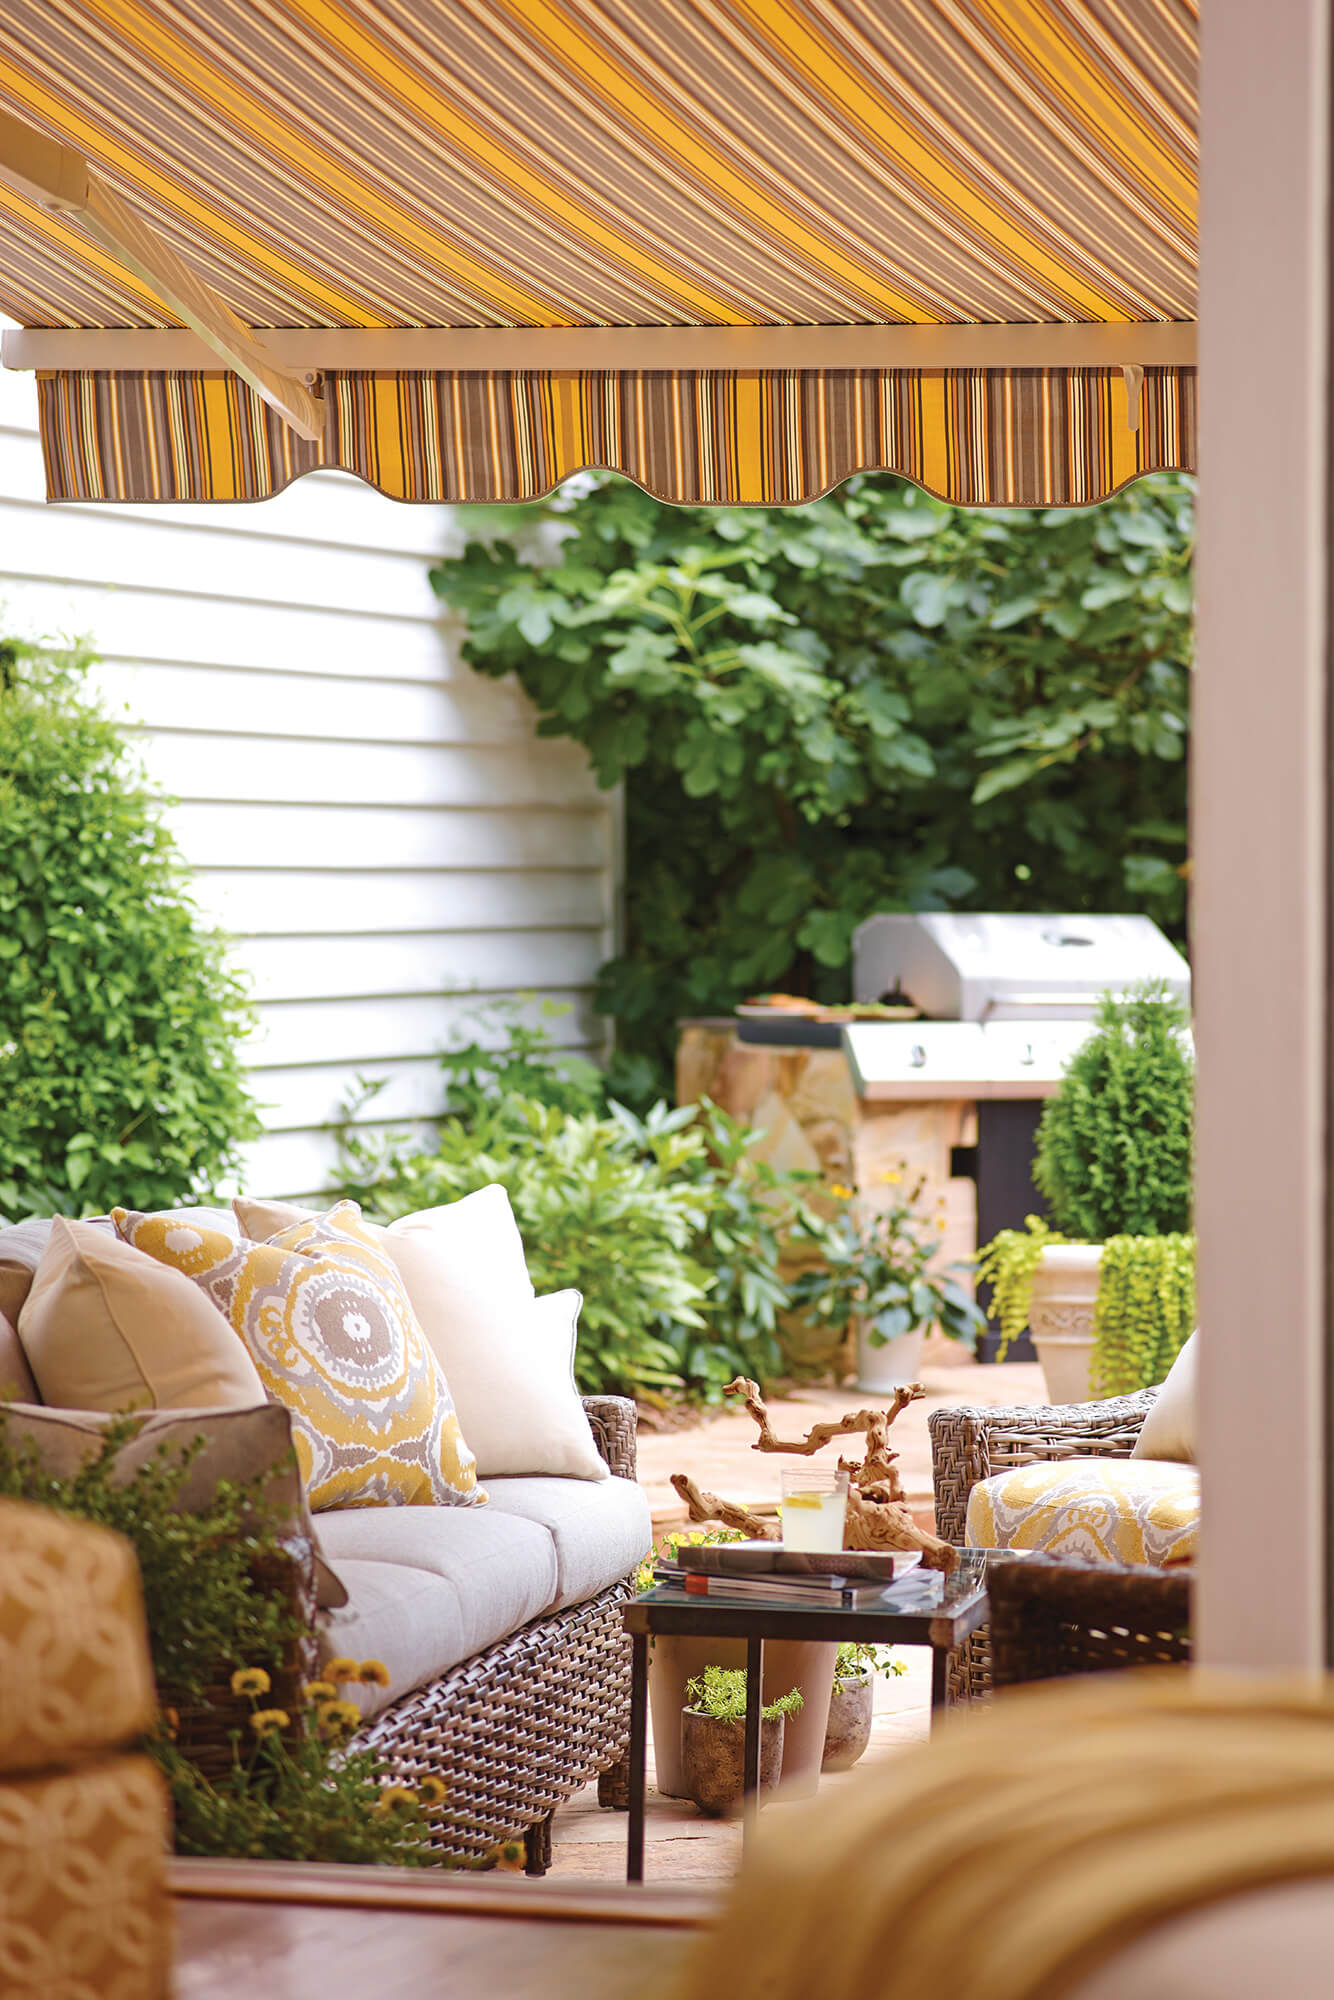 View underneath yellow striped retractable awning on a patio